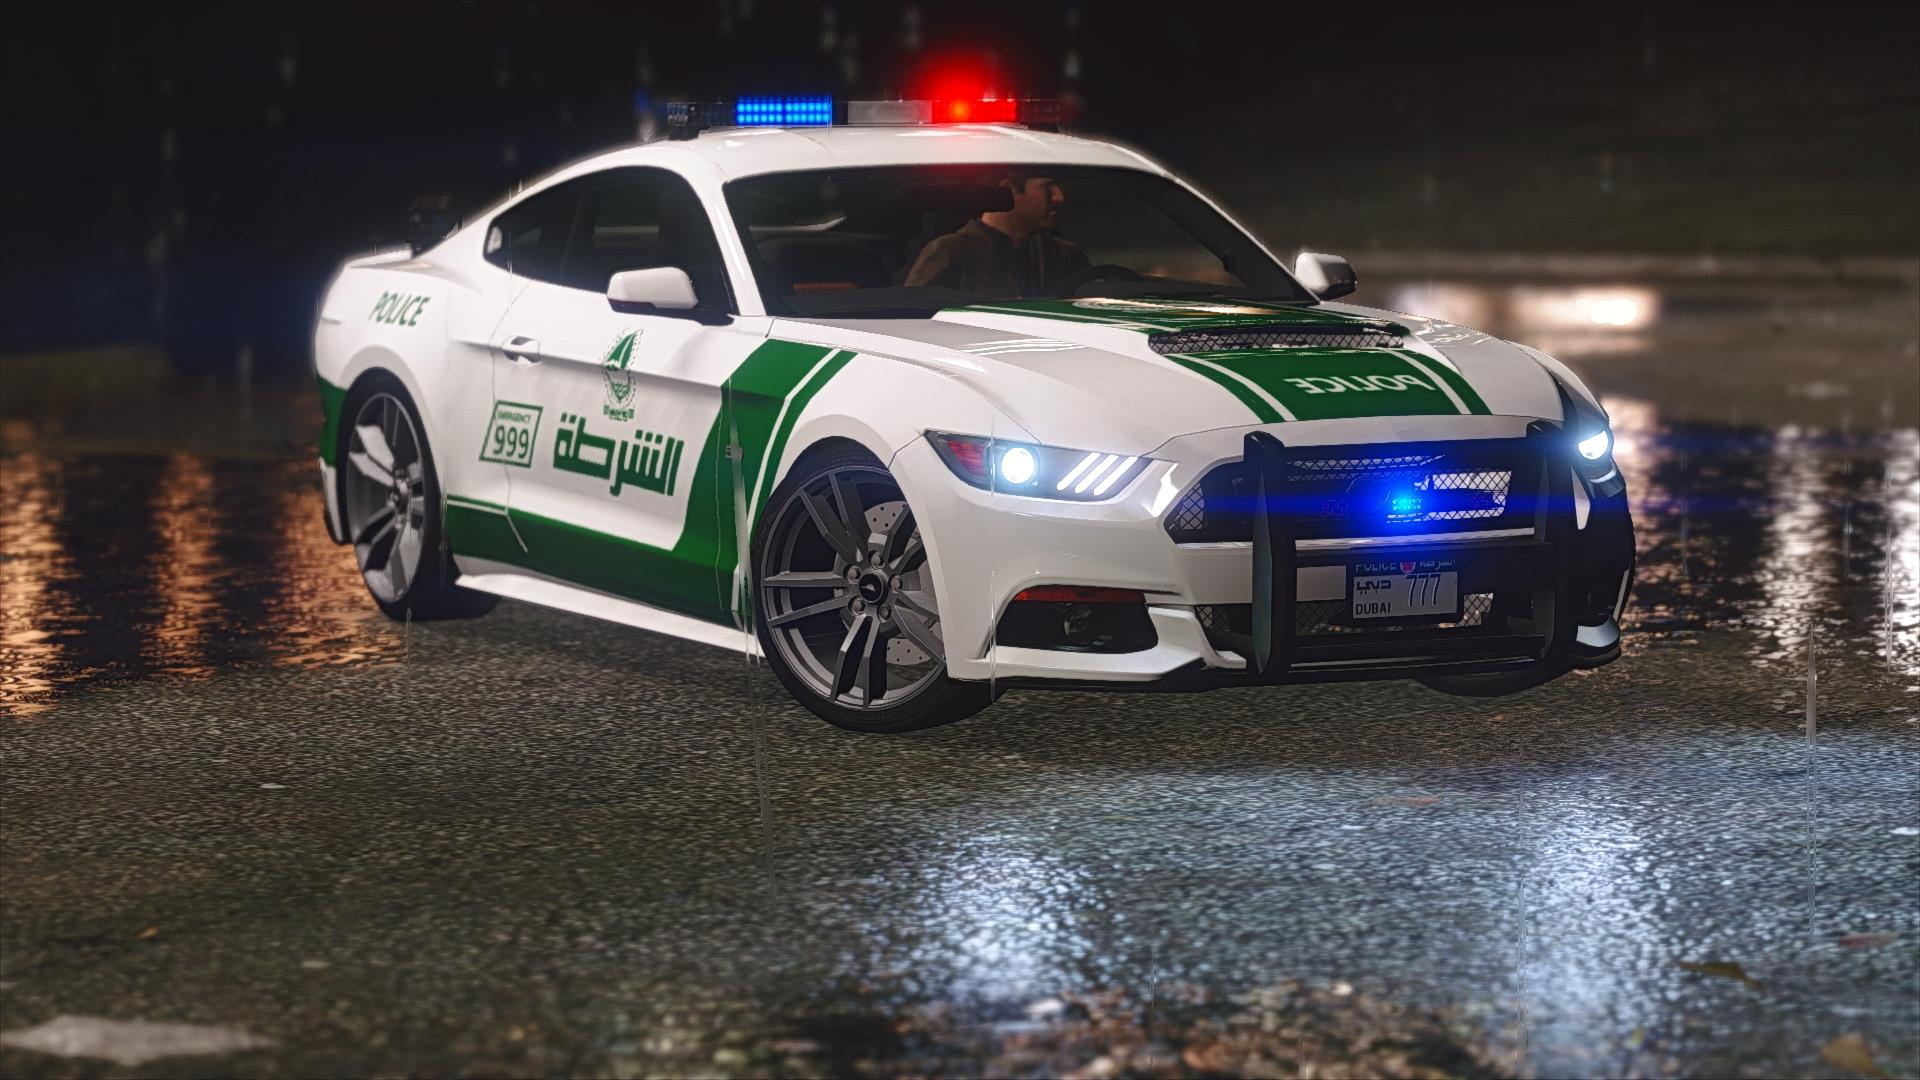 Ford Mustang Police Car. Interesting Greenlight Nypd Ford Crown Vic Police Interceptor With Ford ...